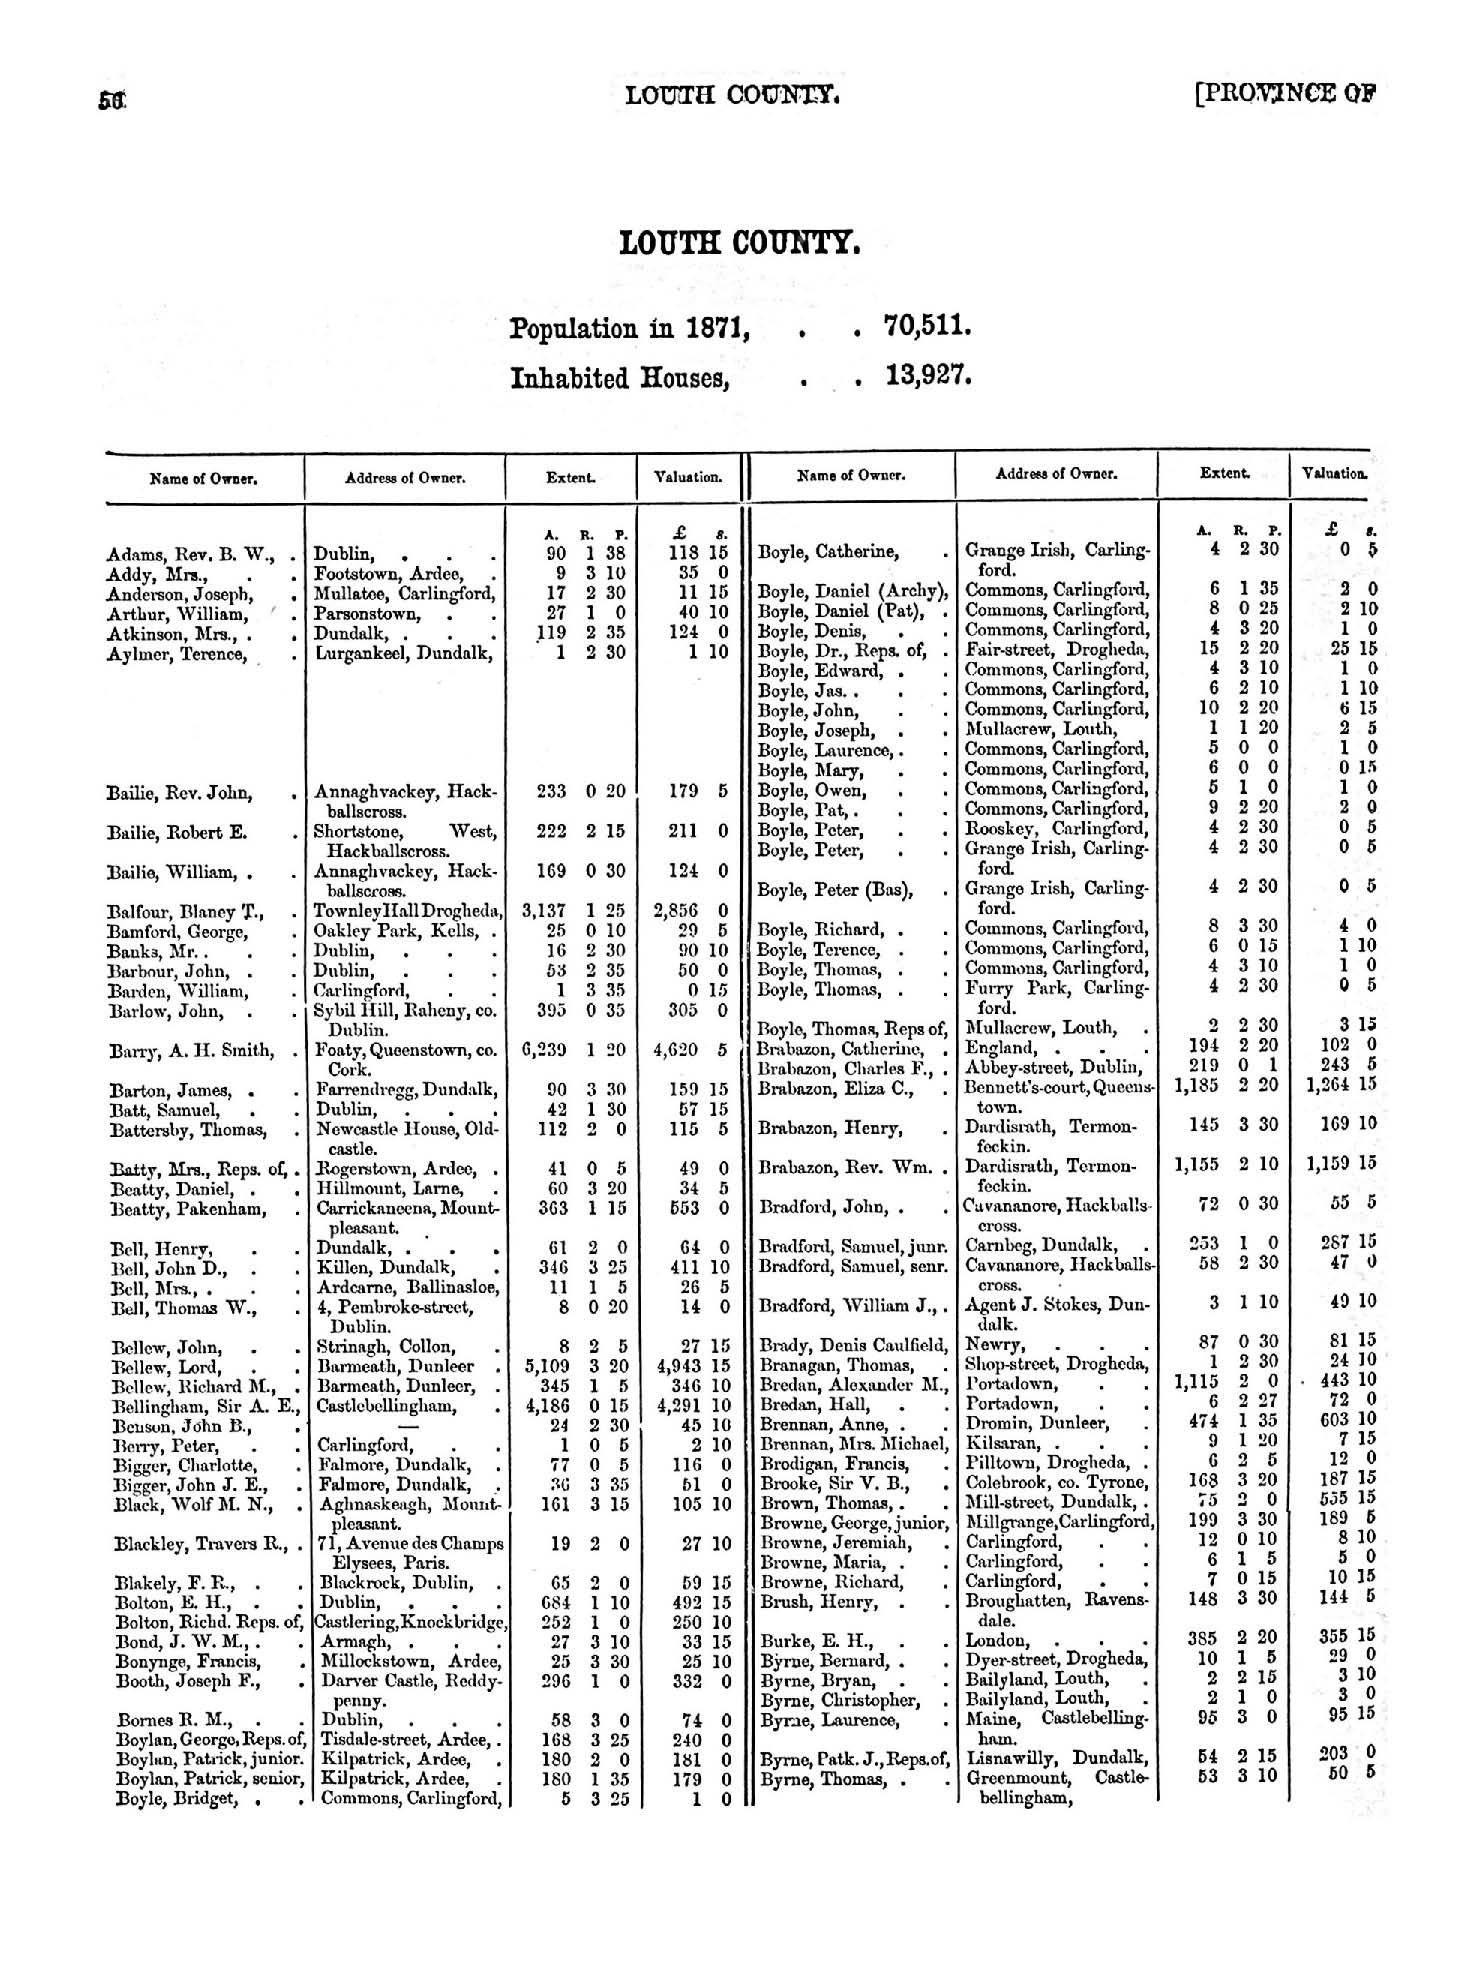 Return of Owners of Land, 1876 page 56 - click to open larger version in a new window